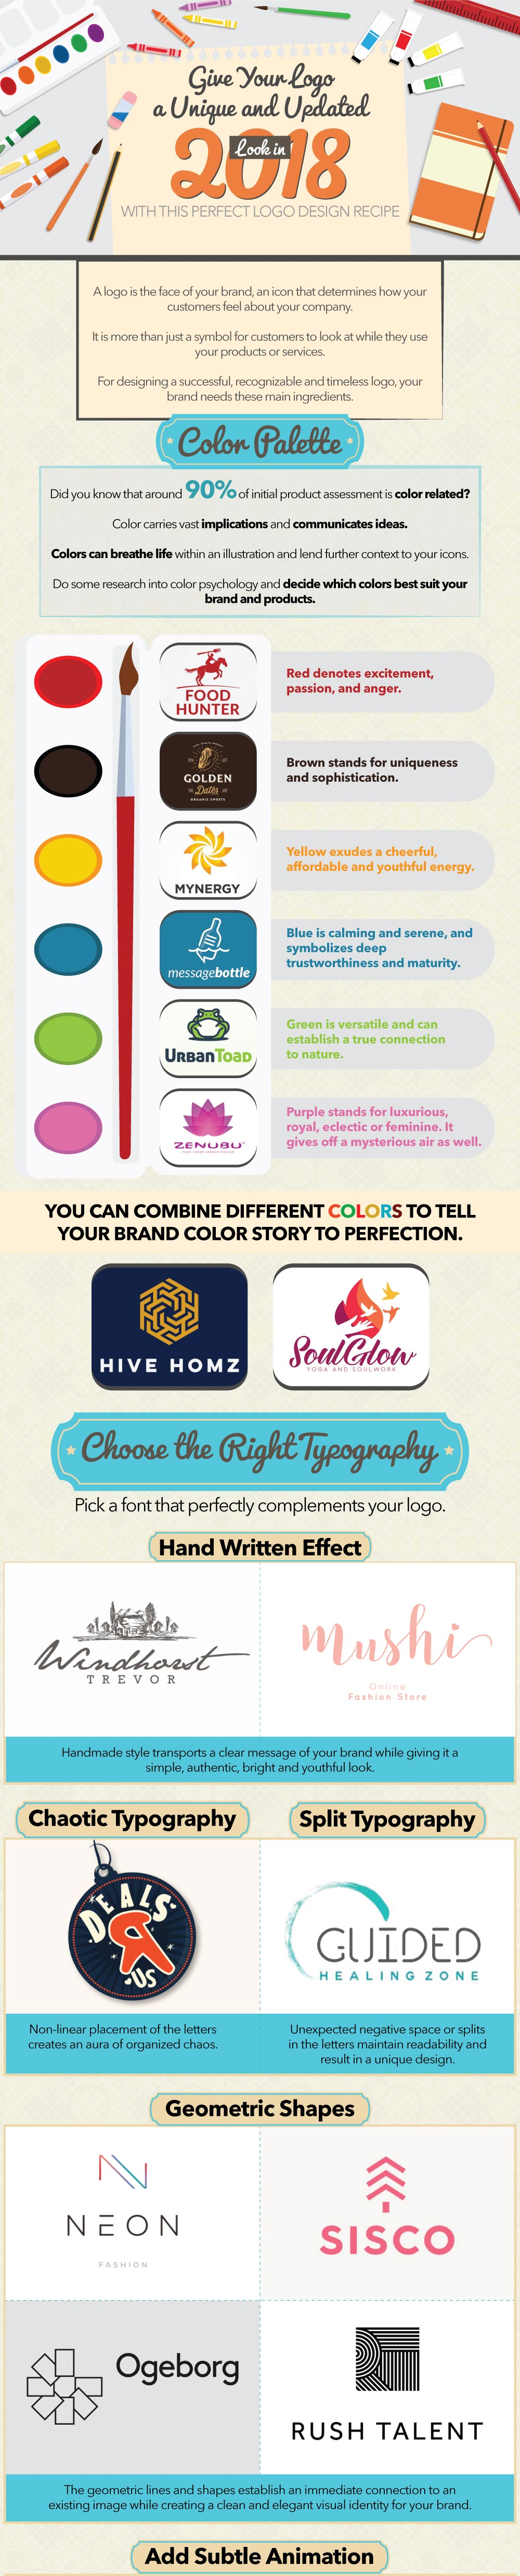 Give your Logo a Unique & Updated Look in 2018 - Infographics